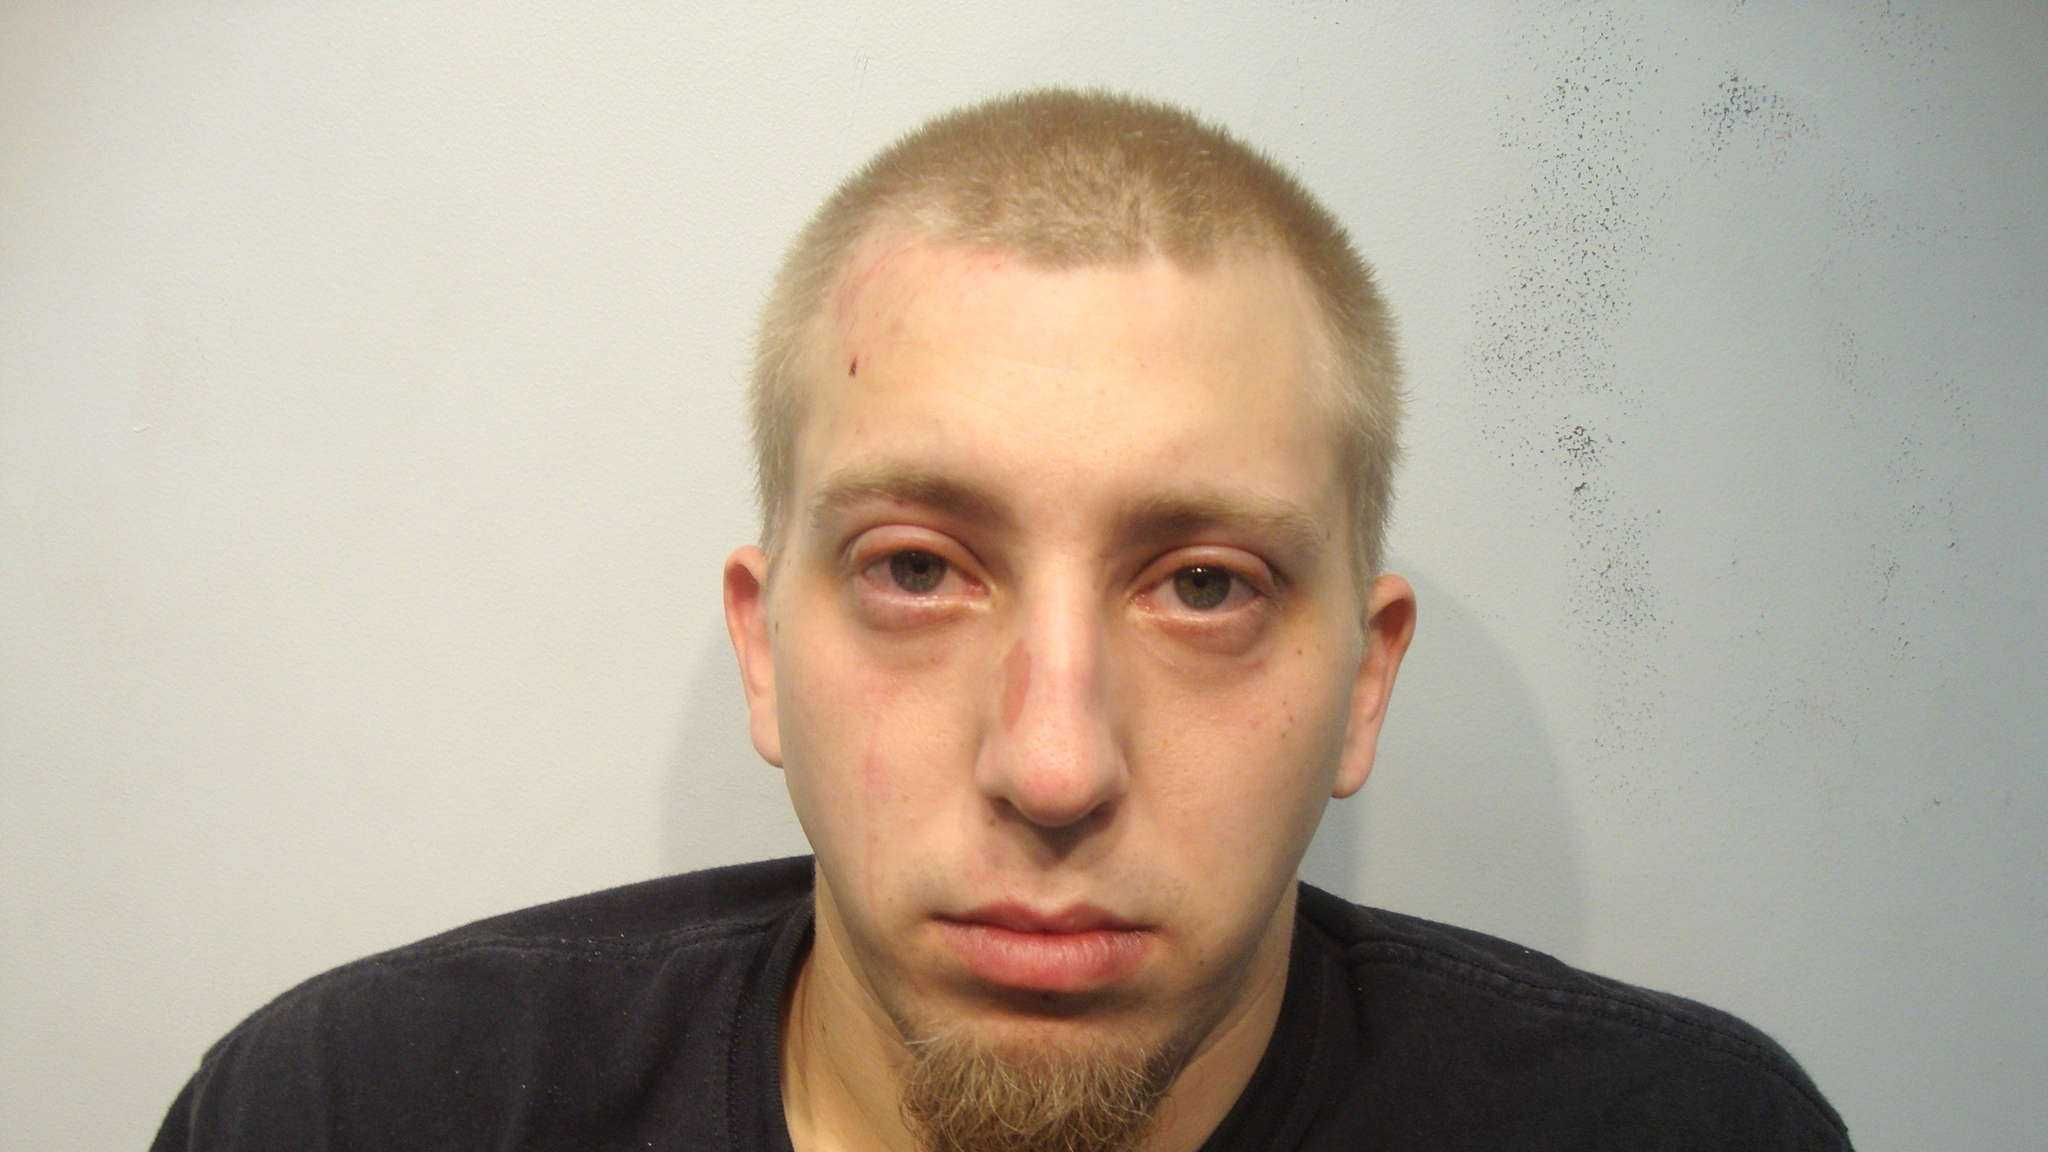 Michael Stringer led police on a chase before crashing into a house in Rochester early Saturday, say police.